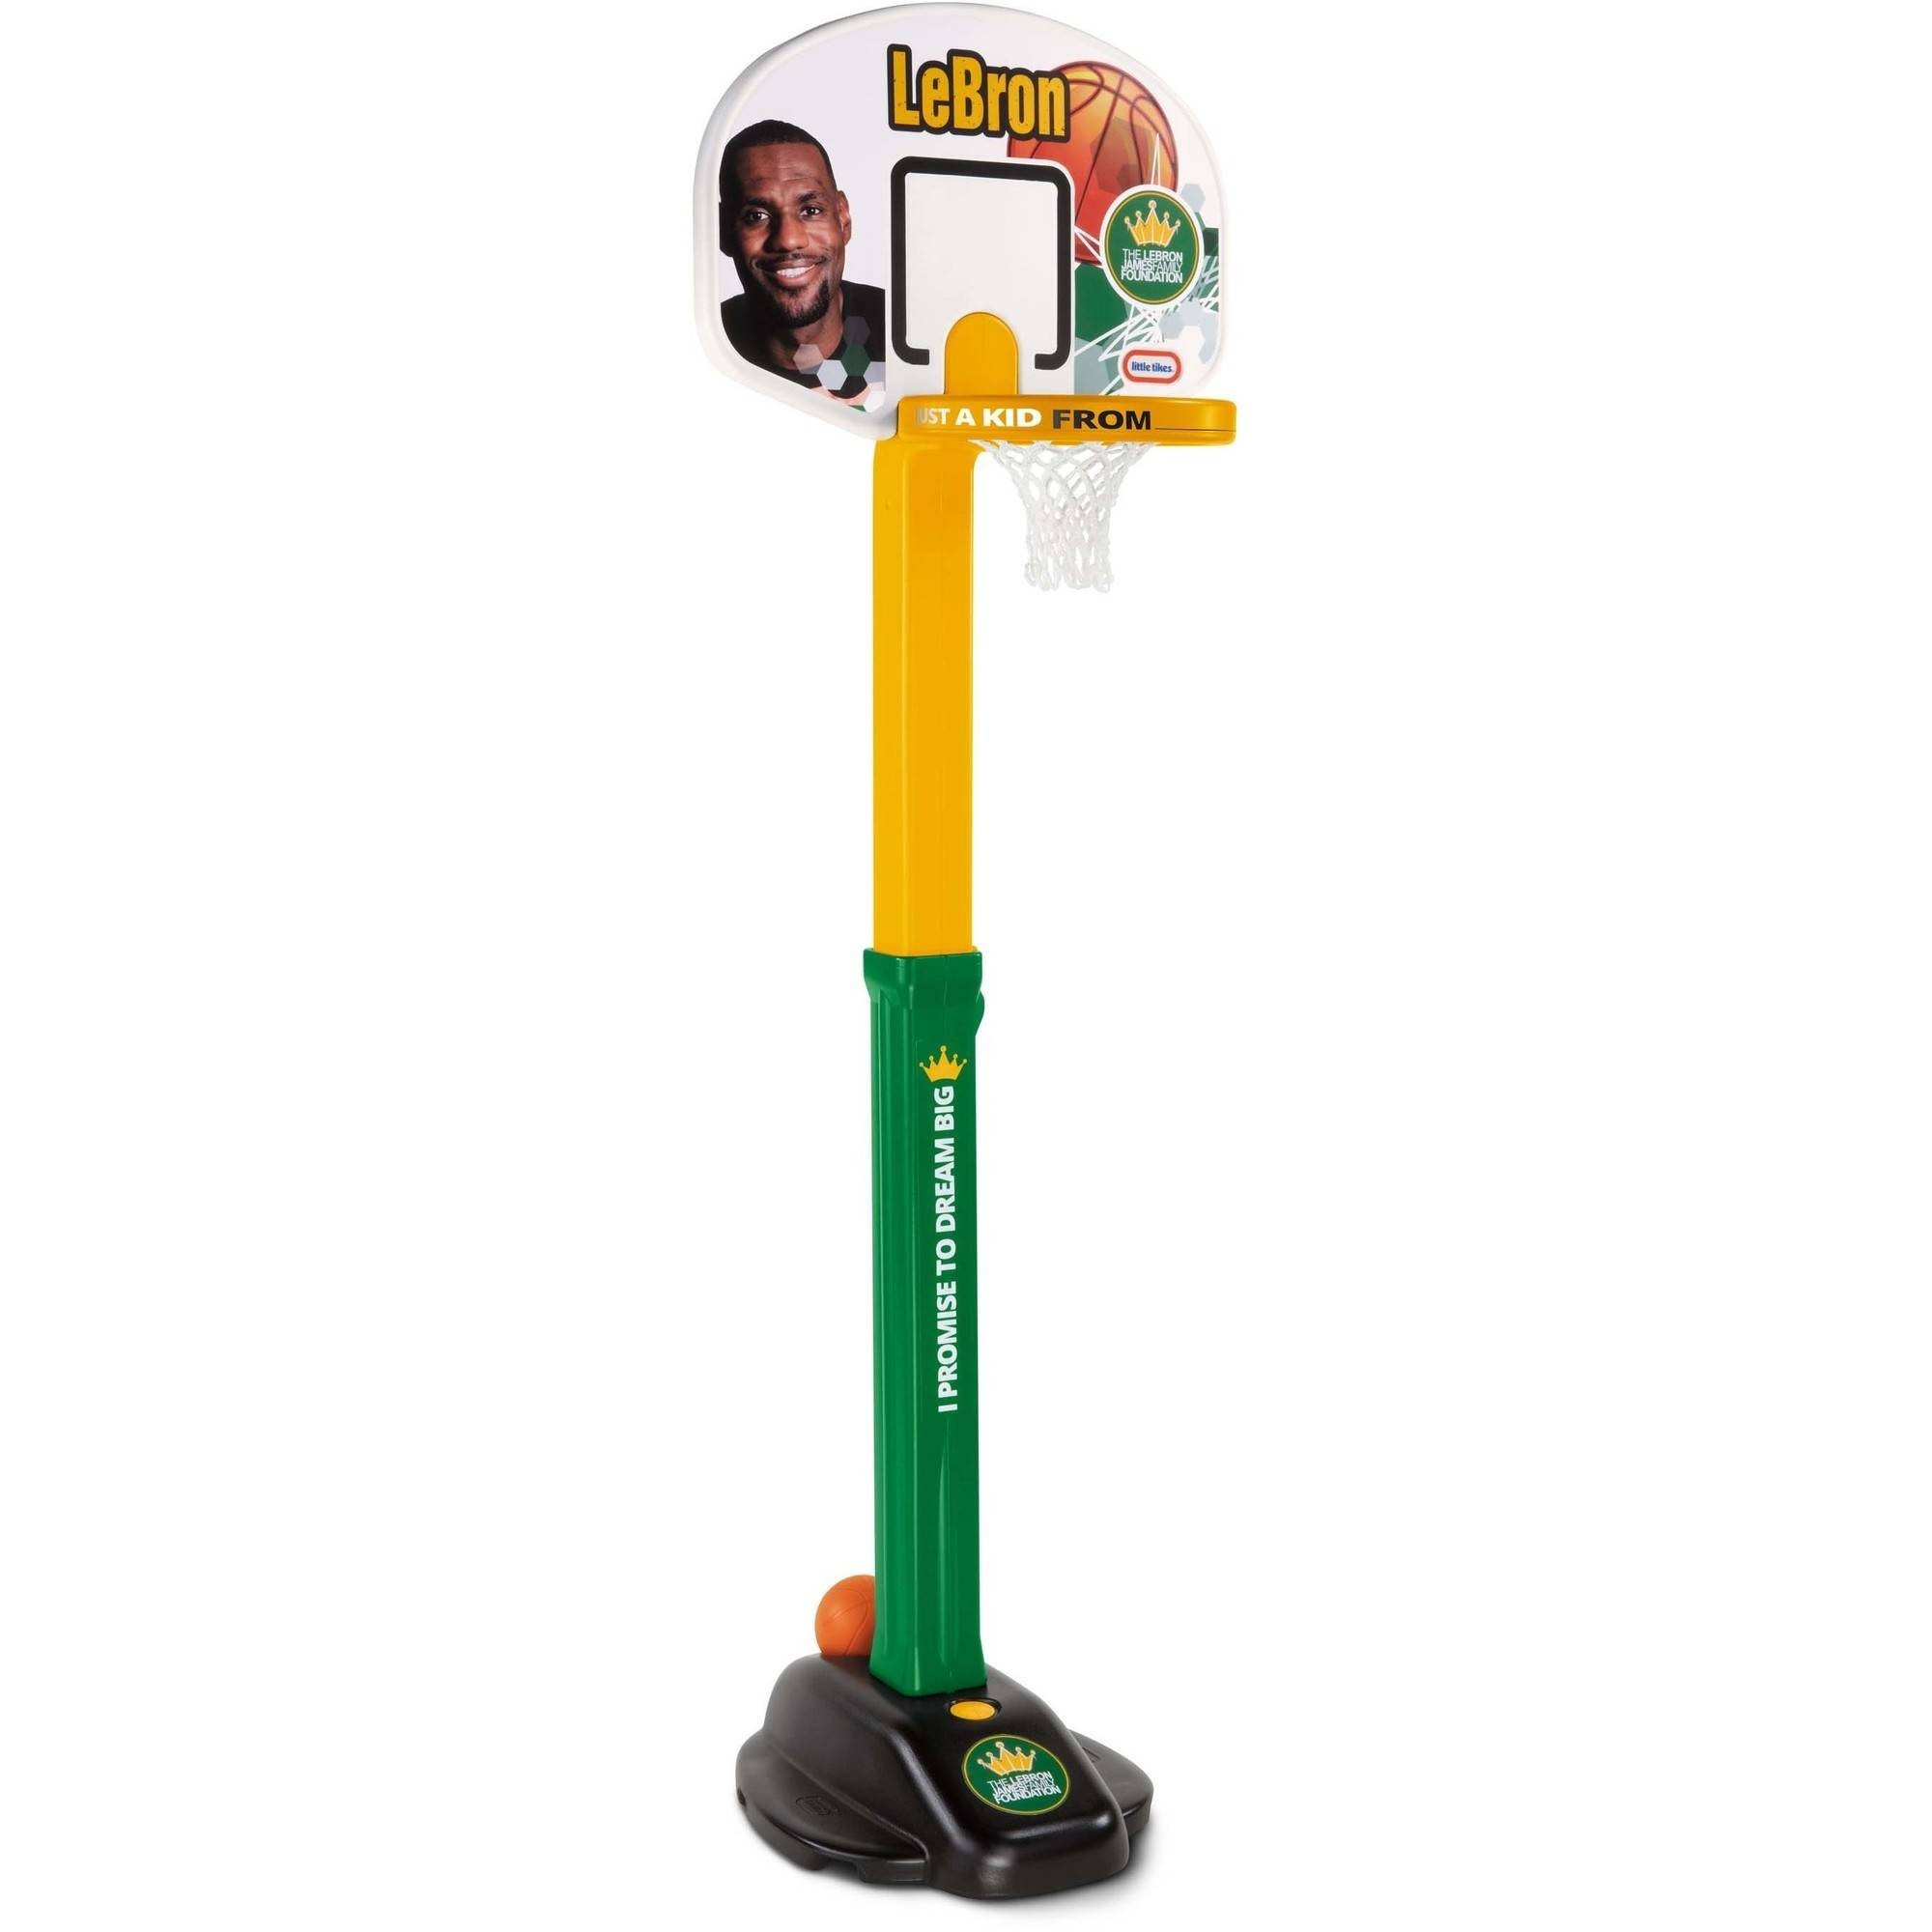 Little Tikes LeBron James Family Foundation Dream Big Basketball Set by MGA Entertainment